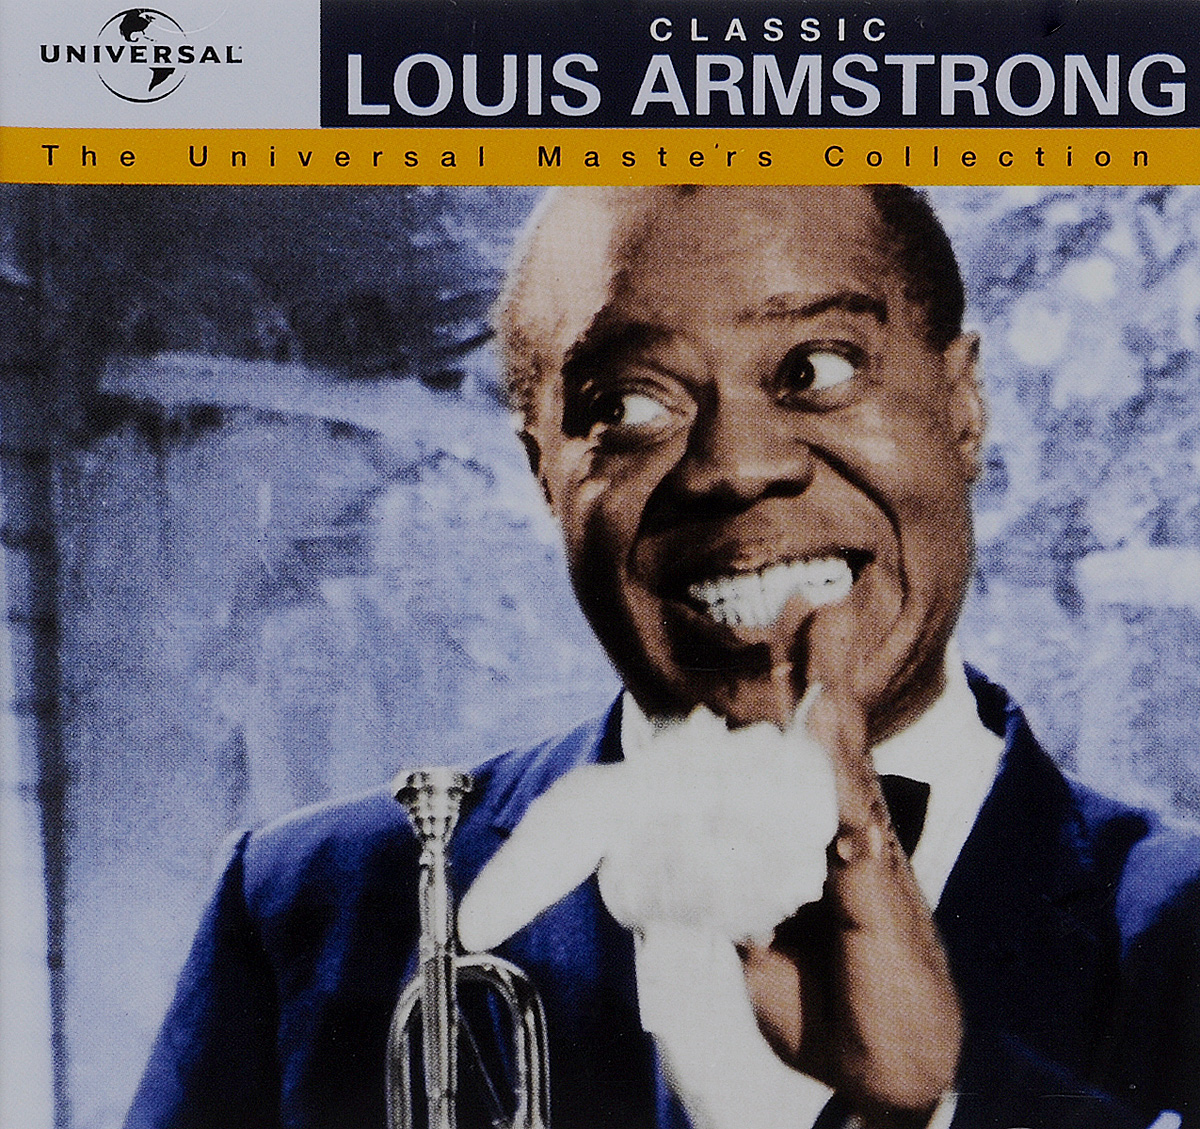 Луи Армстронг Louis Armstrong. Classic луи армстронг дюк эллингтон louis armstrong